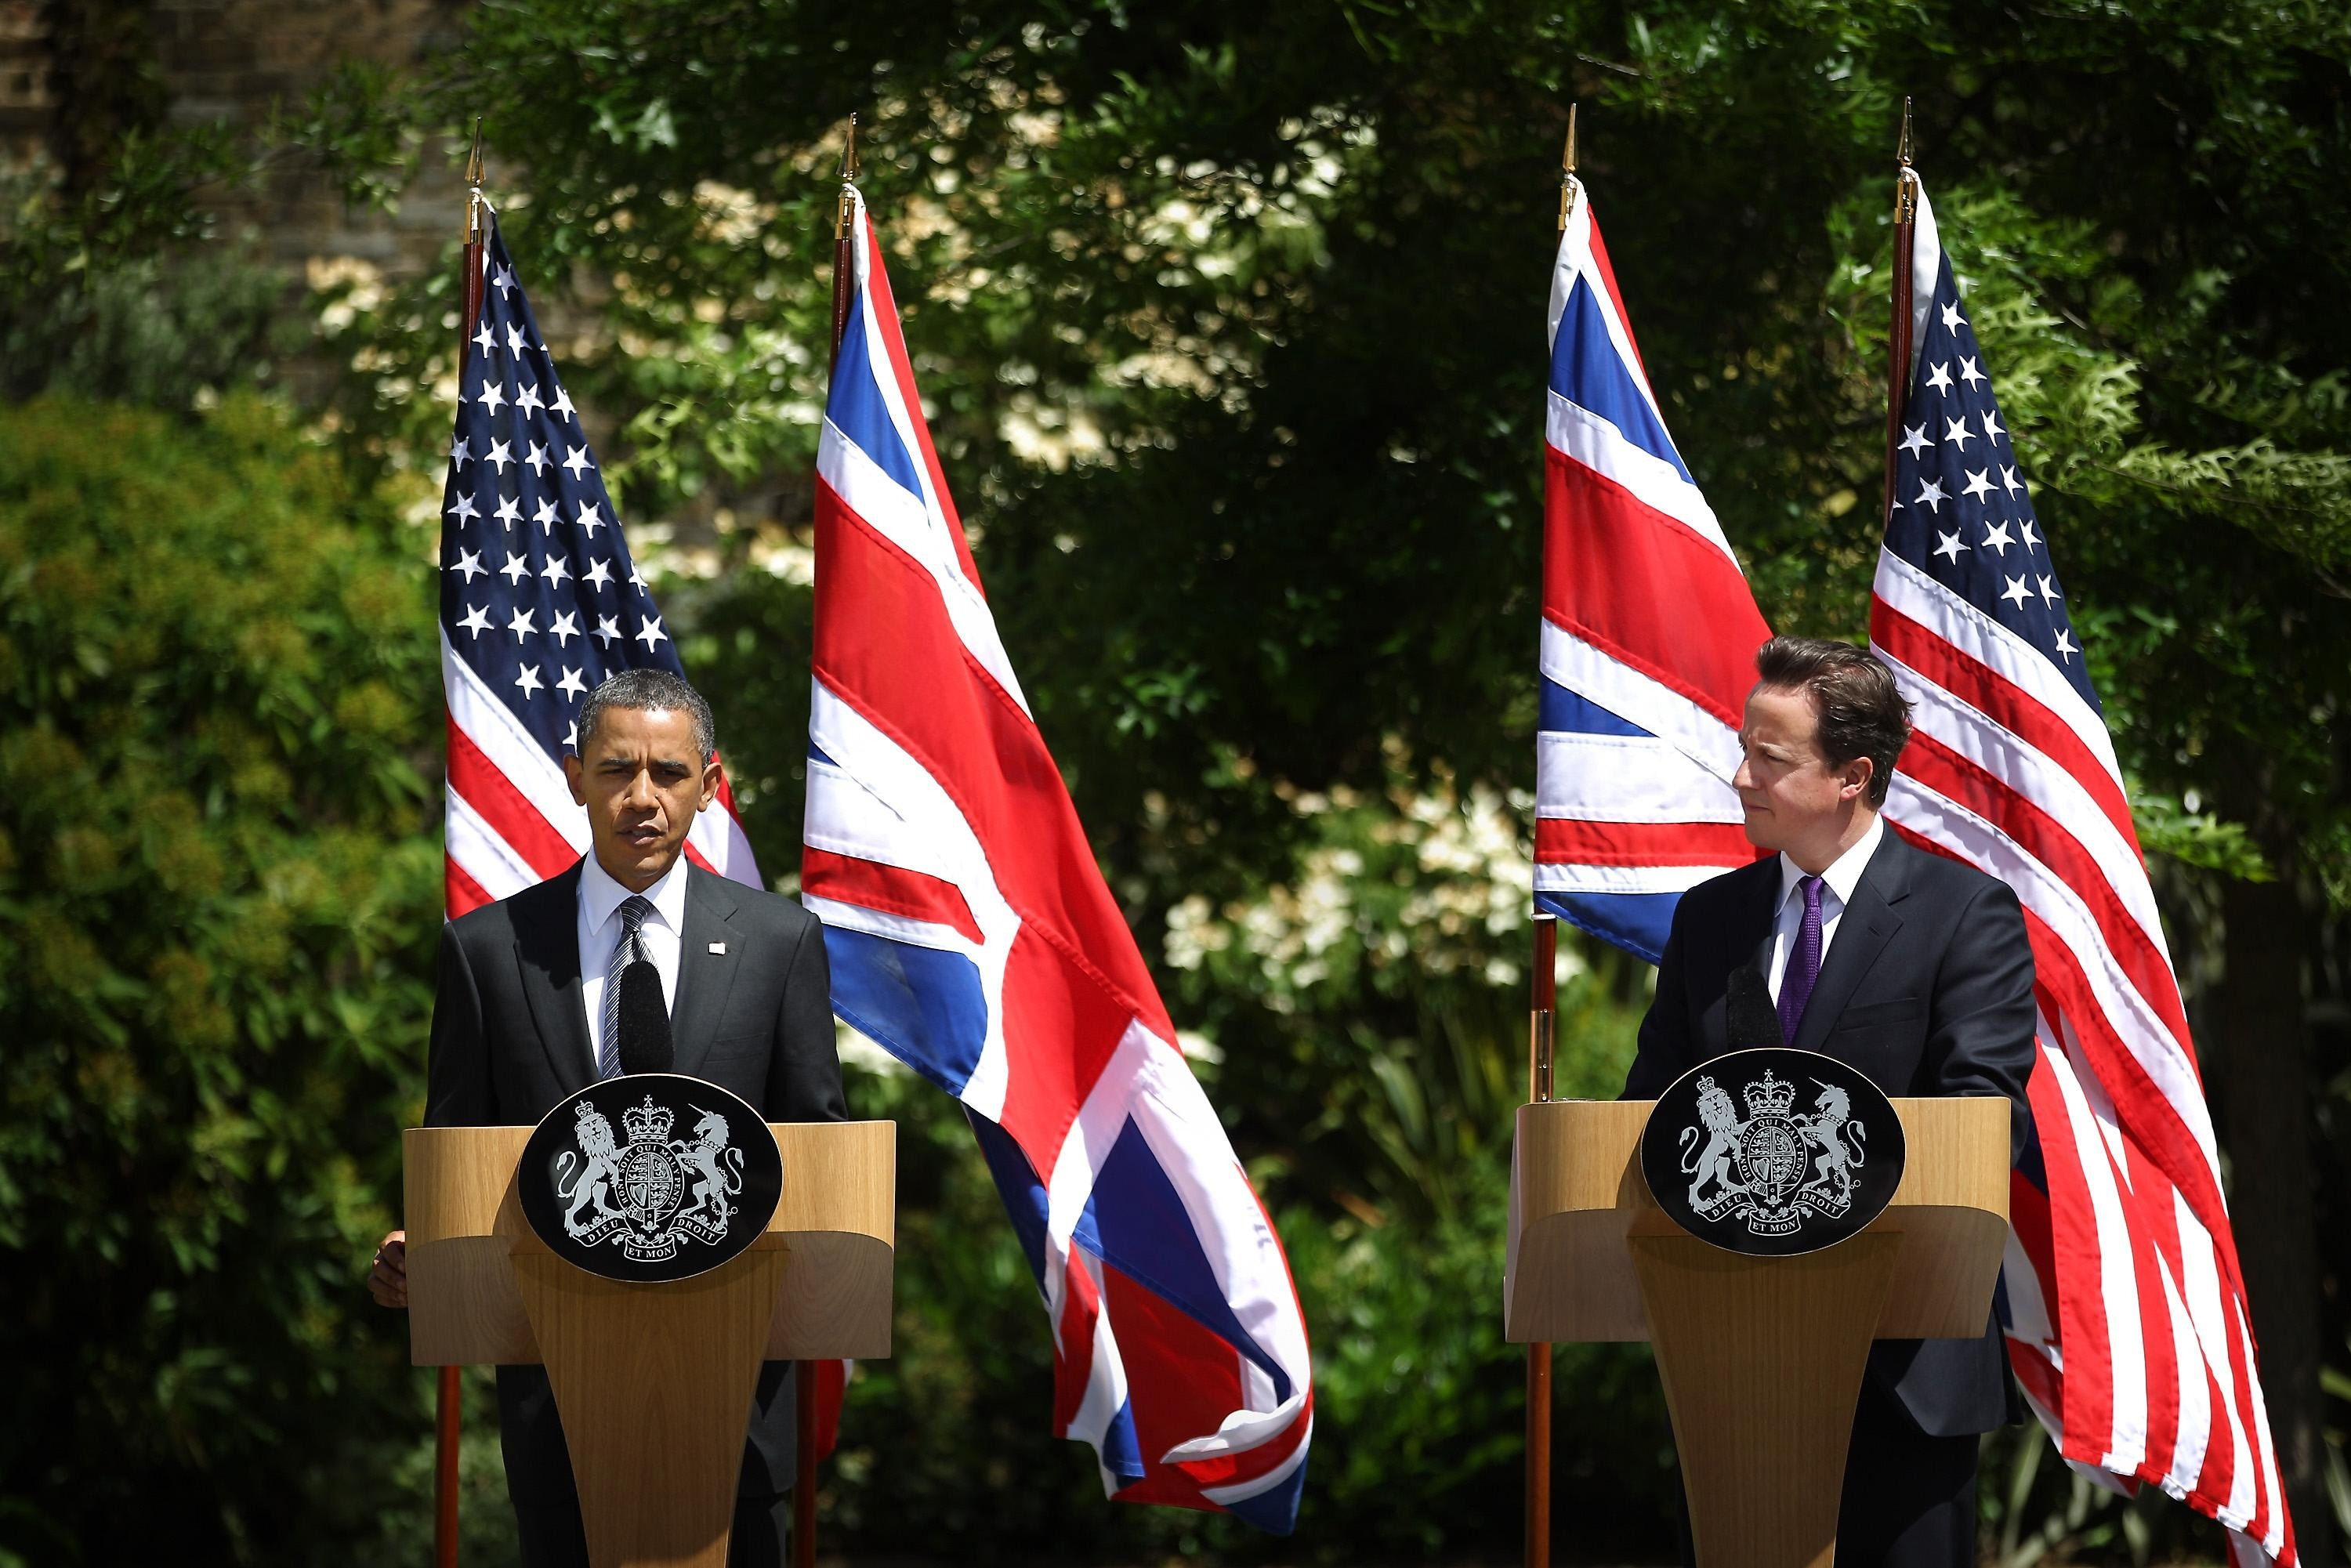 Barack Obama and David Cameron get to know each other during the President's state visit to the UK last summer (PA)